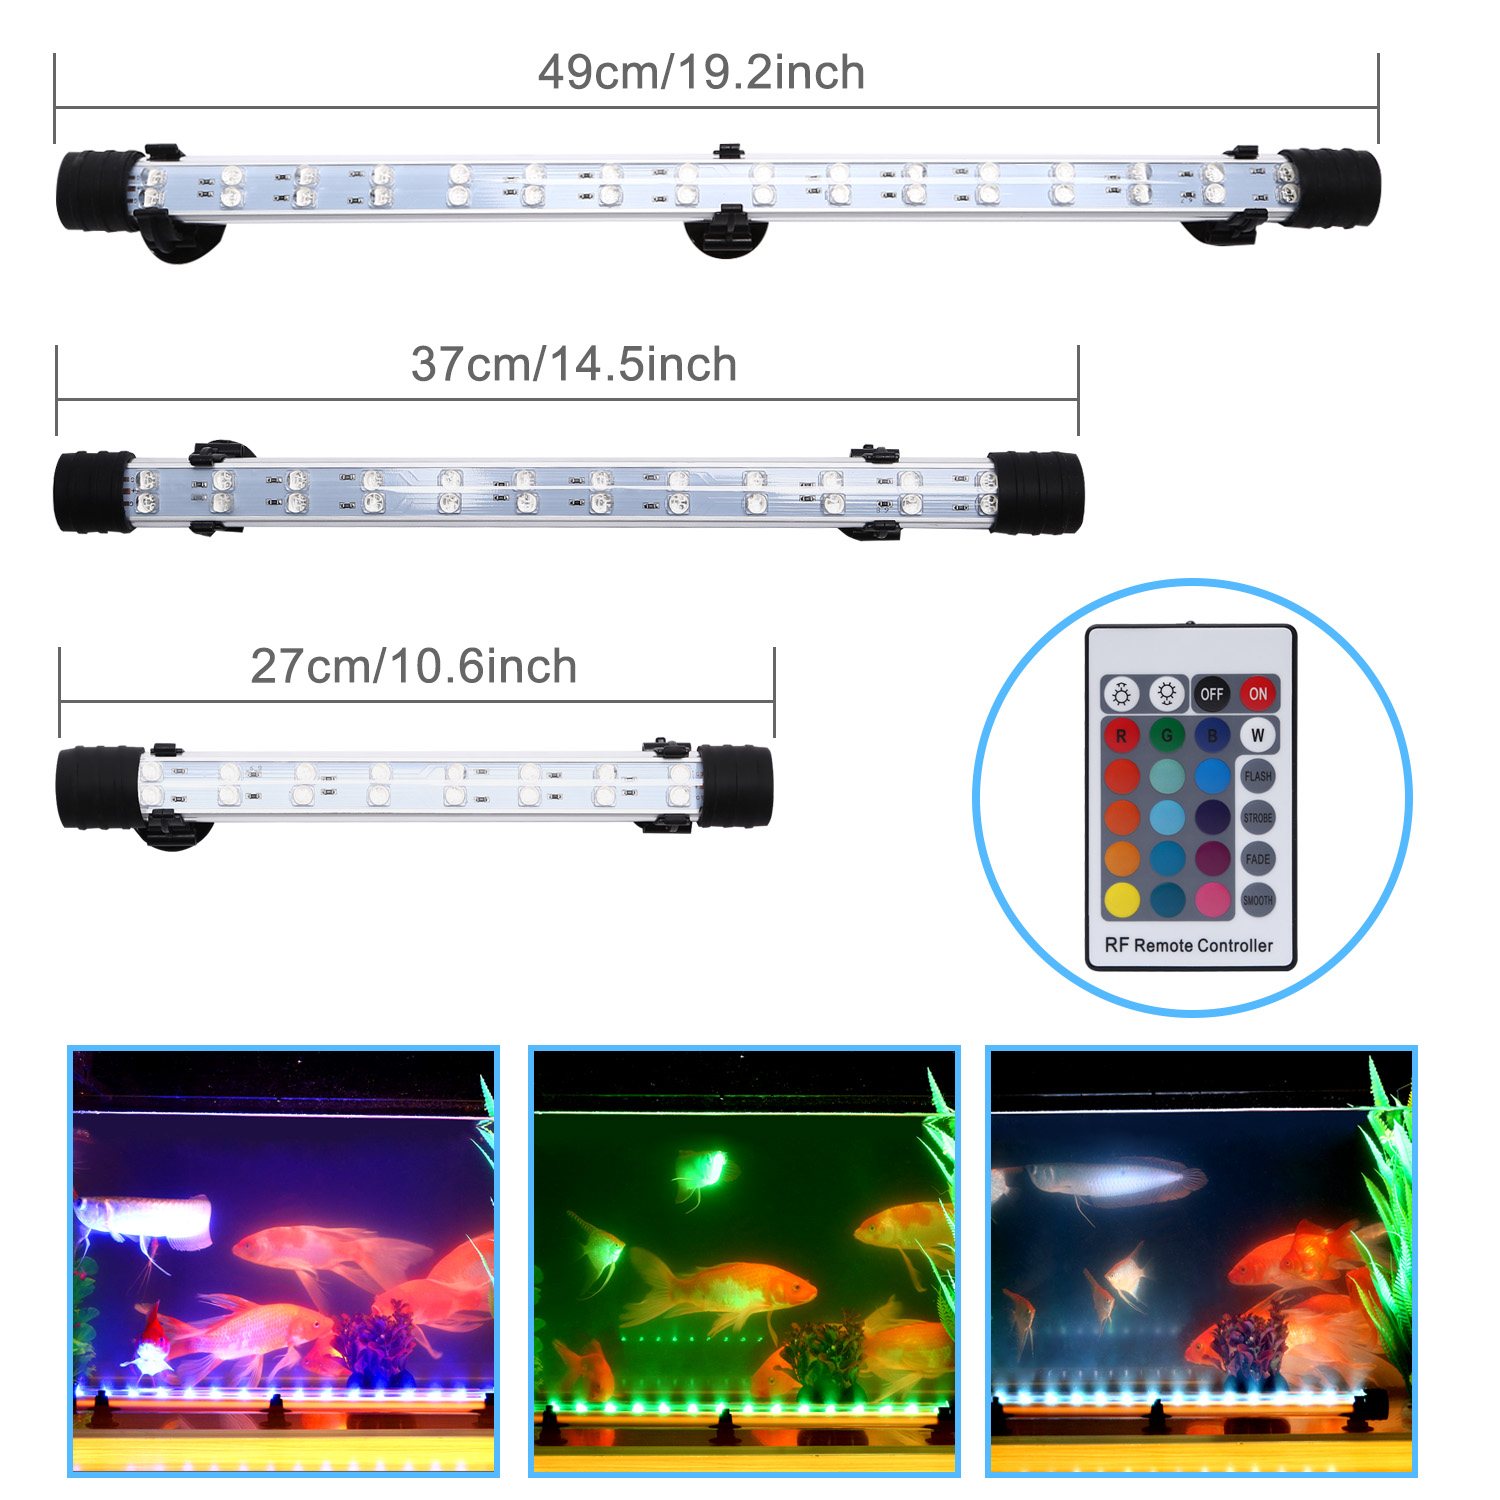 Submersible air bubble curtain rgb led light bar remote aquarium image is loading submersible air bubble curtain rgb led light bar mozeypictures Gallery